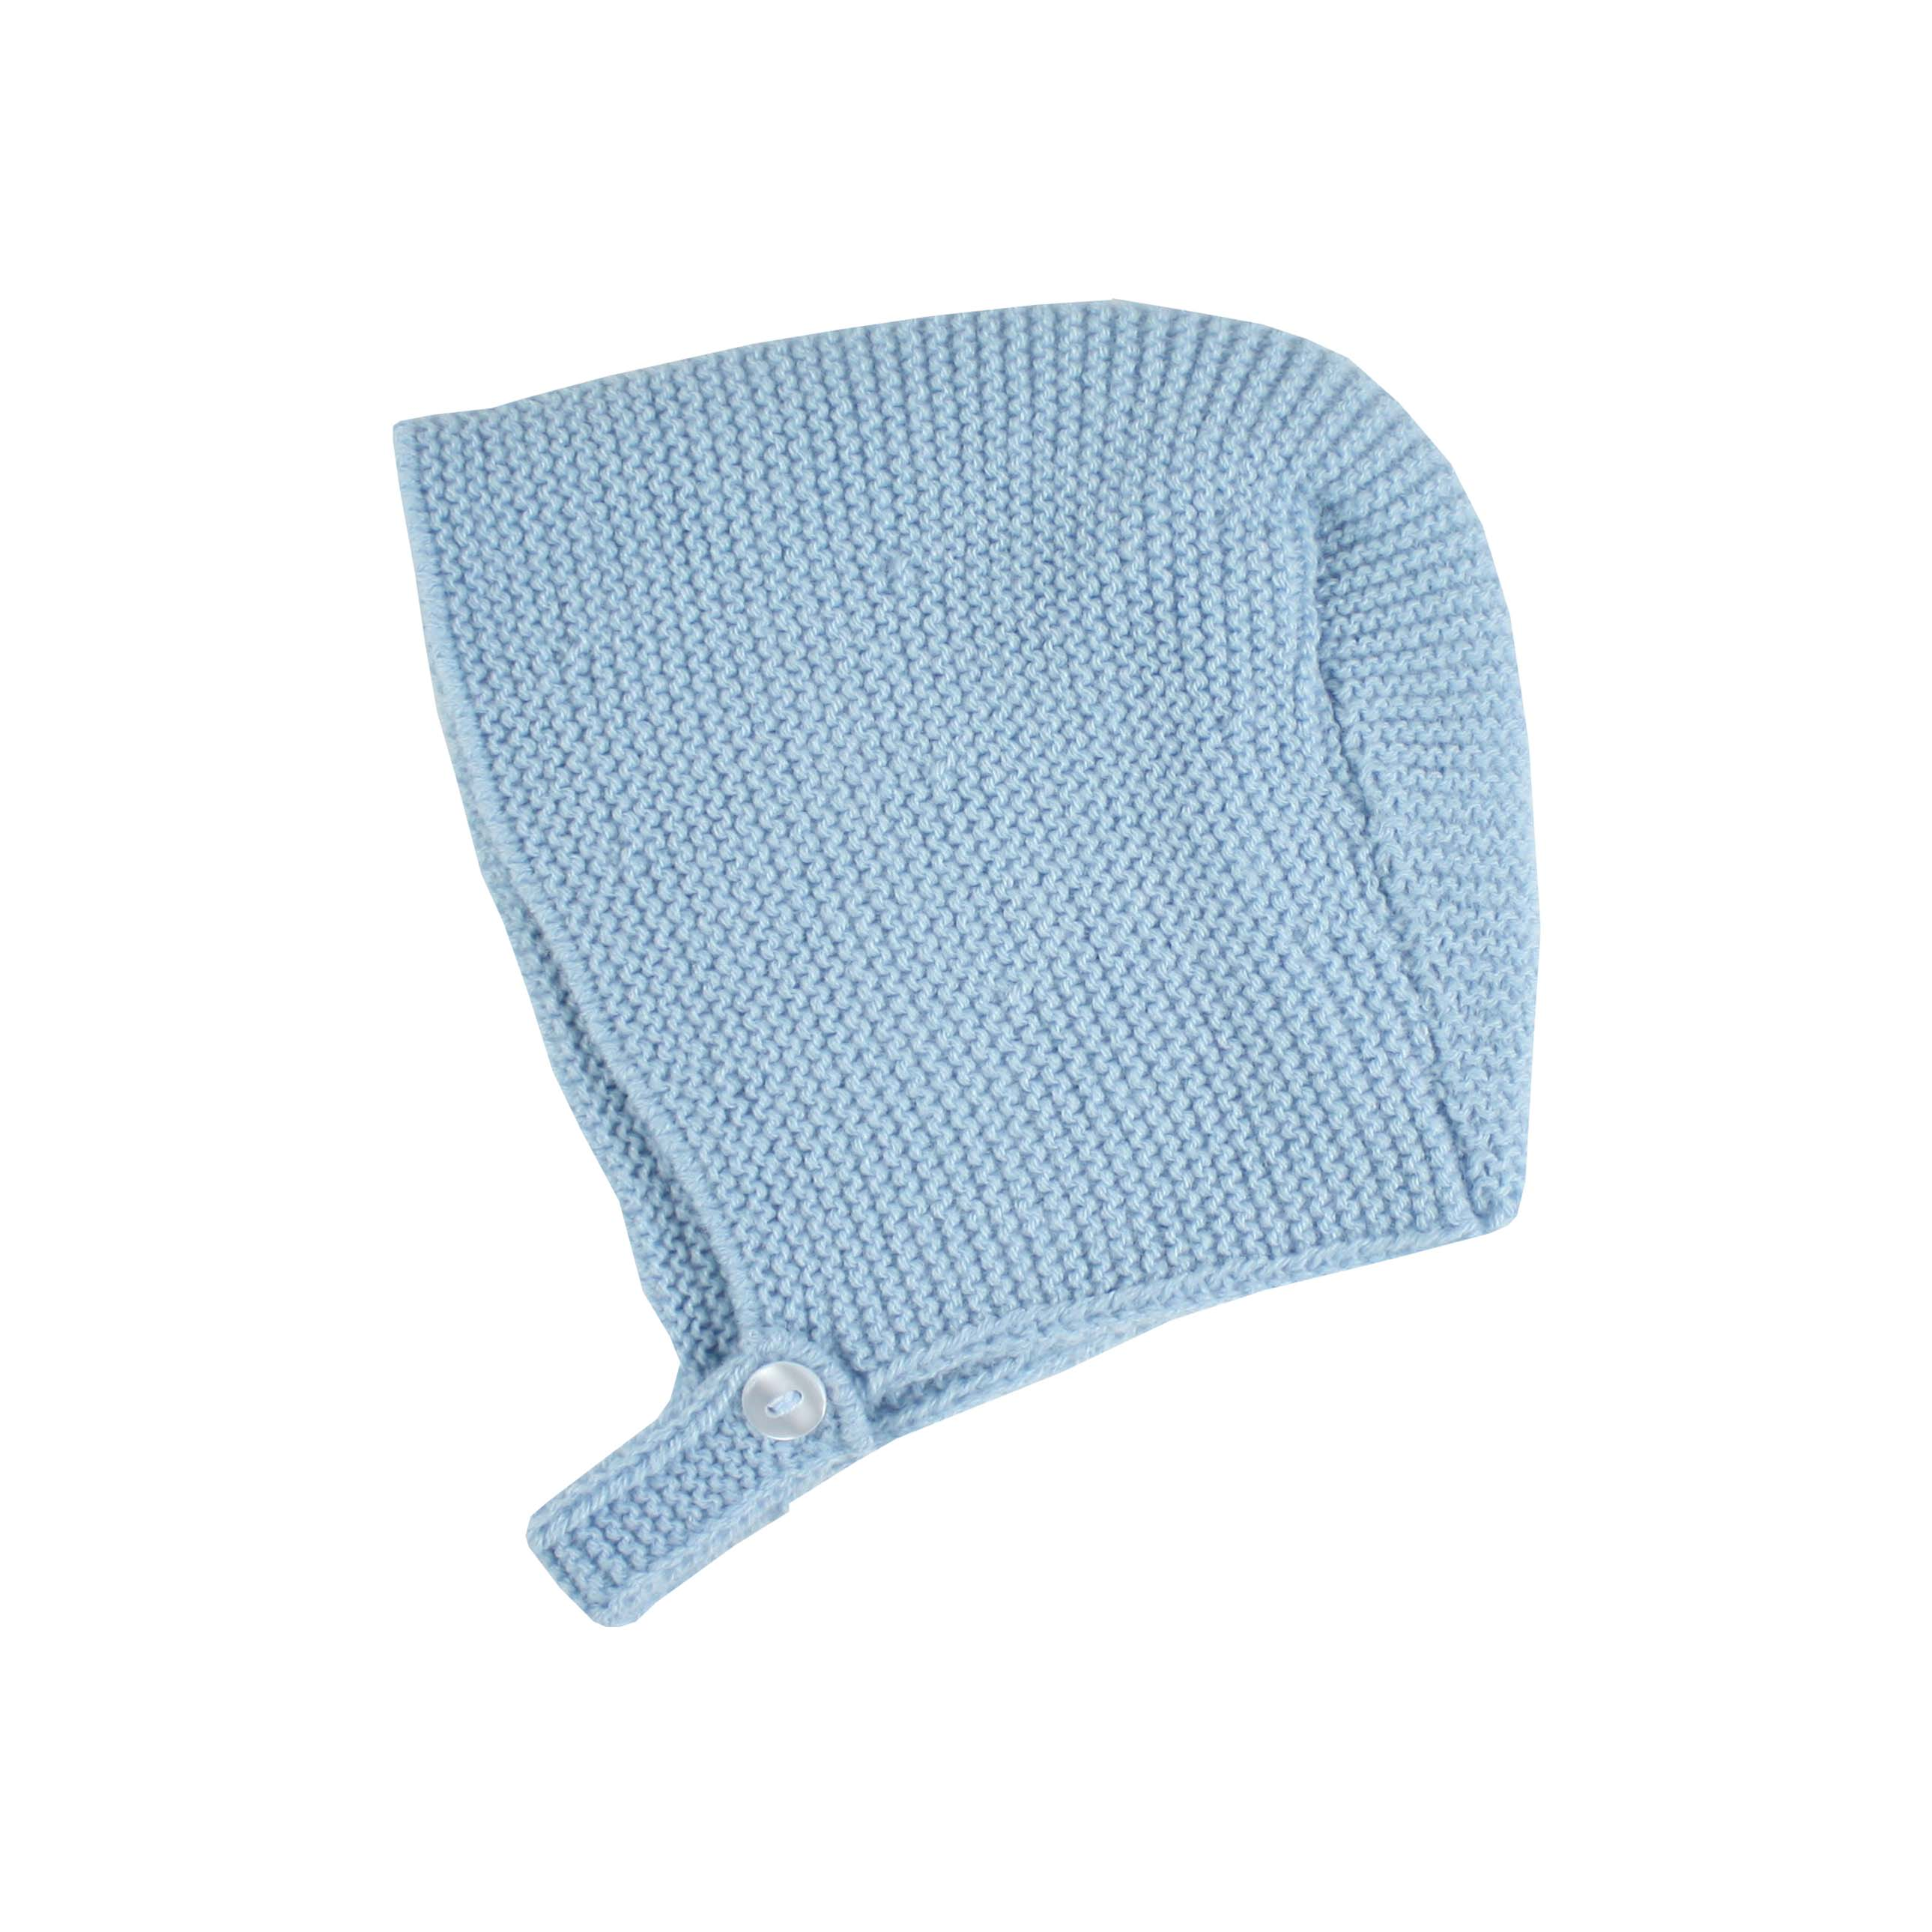 Blue baby knitted bonnet 40c851dfb28